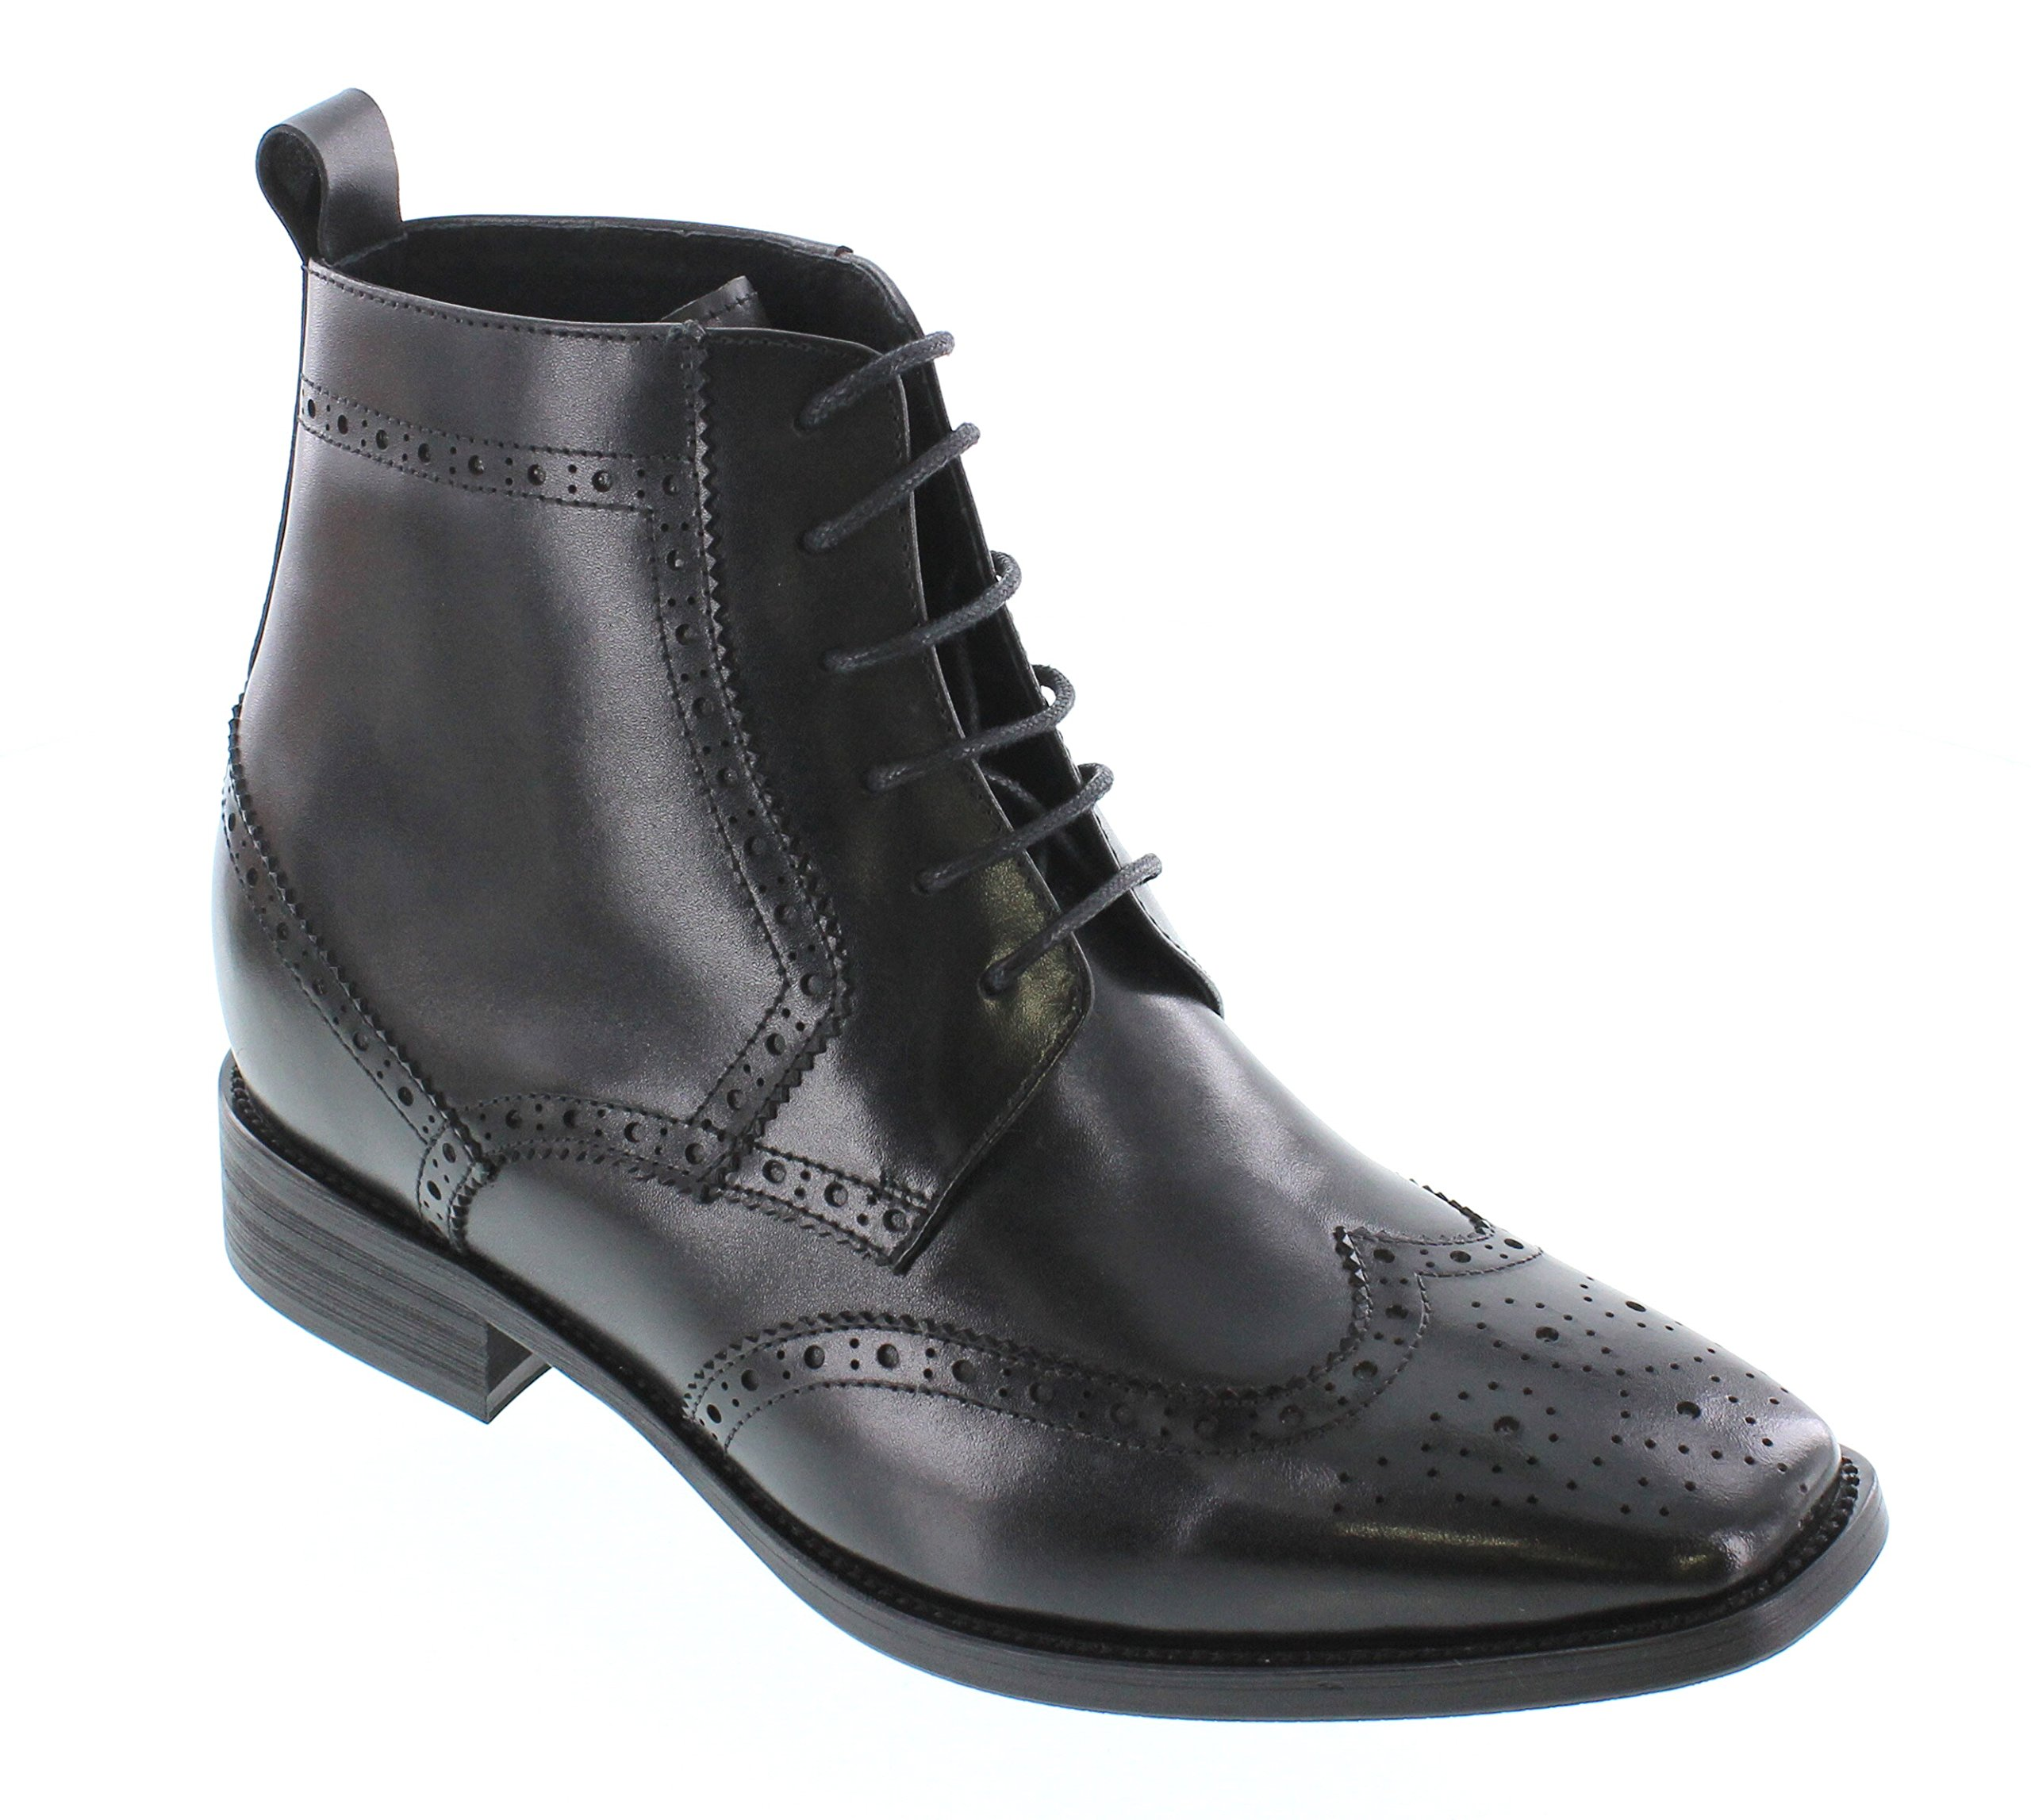 CALTO Men's Invisible Height Increasing Elevator Shoes - Black Premium Leather Lace-up Wing-tip Fashion Dress Boots - 2.6 Inches Taller - T66930